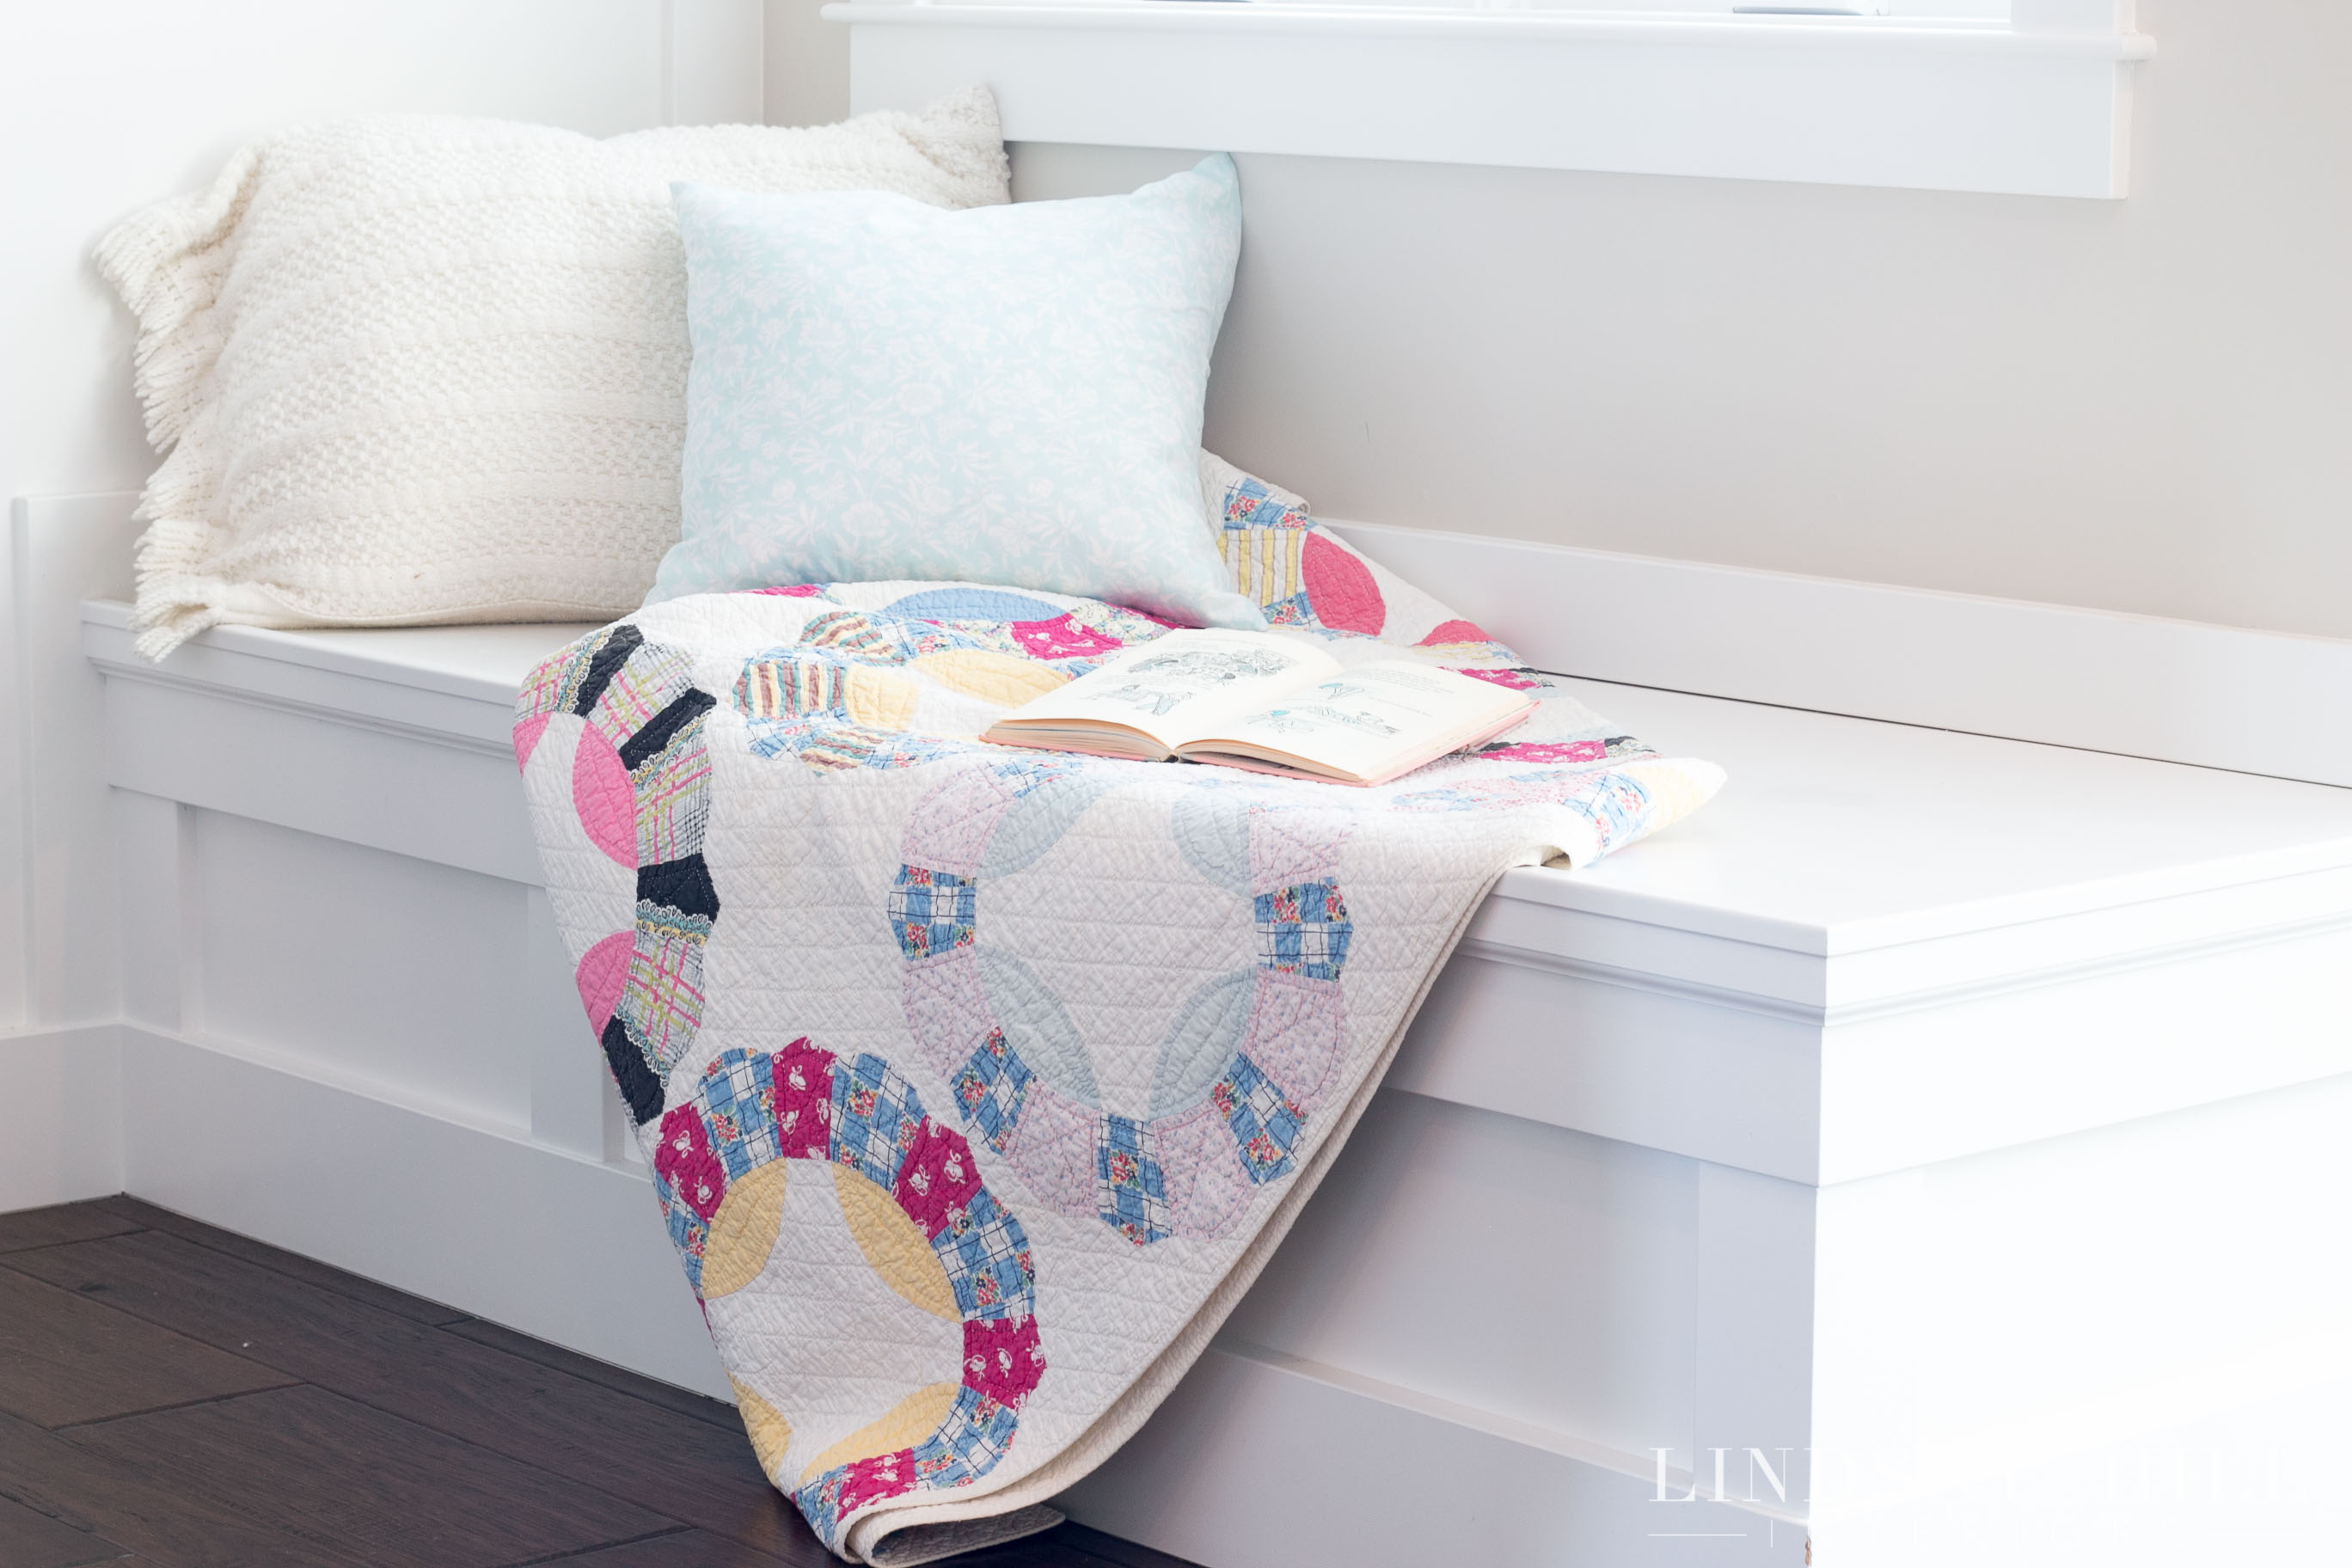 lindsay hill interiors simple valentine's day decor window seat